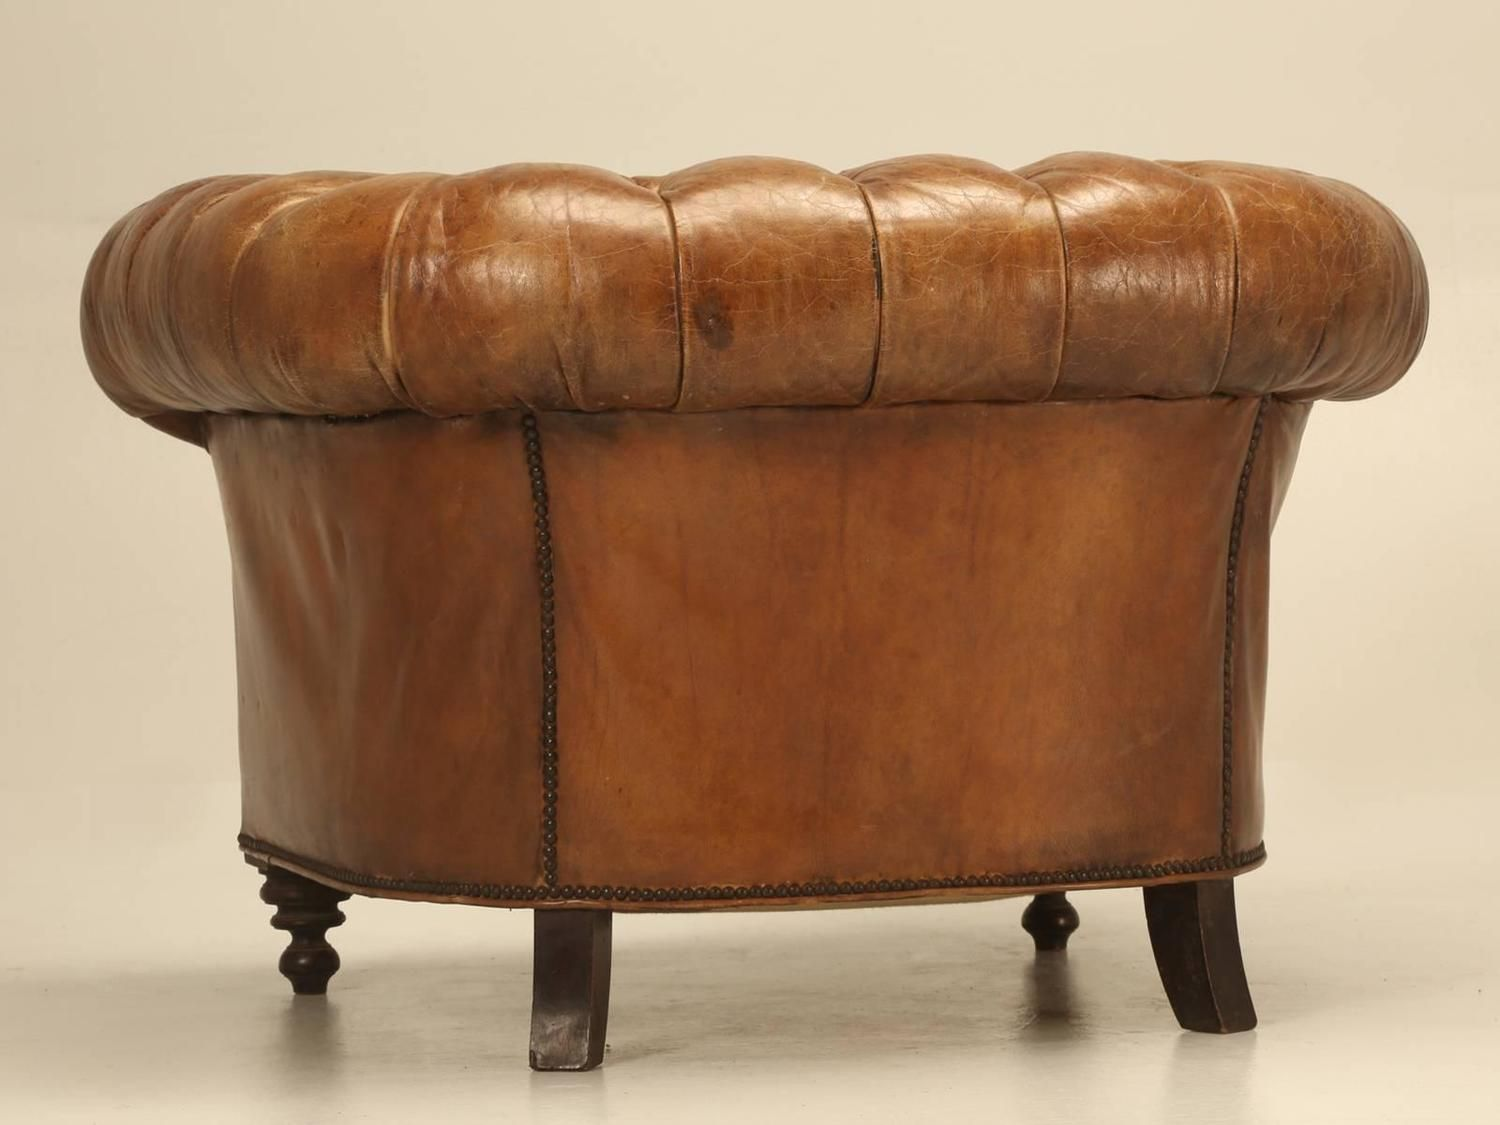 Antique Chesterfield Chair in Original Leather 9